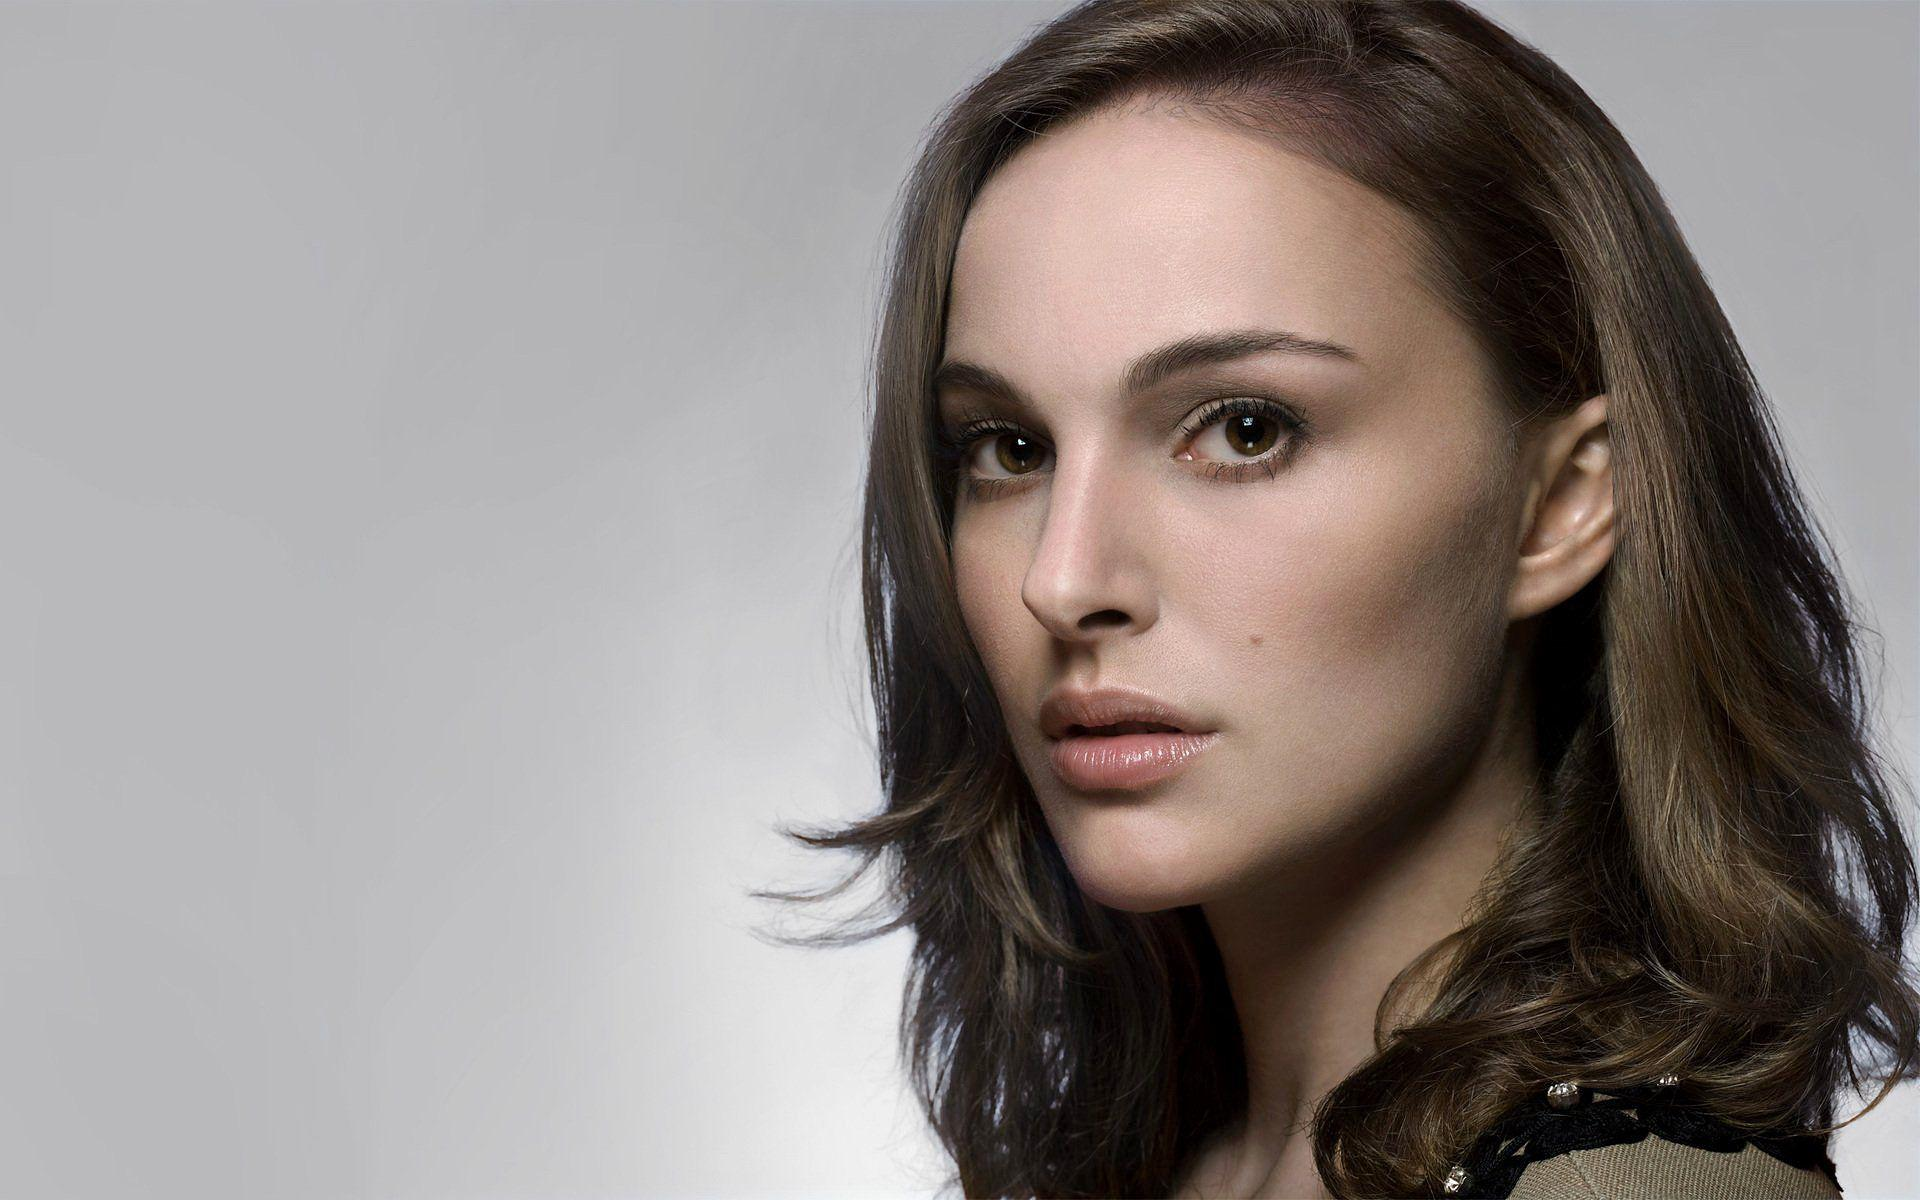 Natalie Portman Wallpaper - Celebrities Wallpapers (9463) ilikewalls.